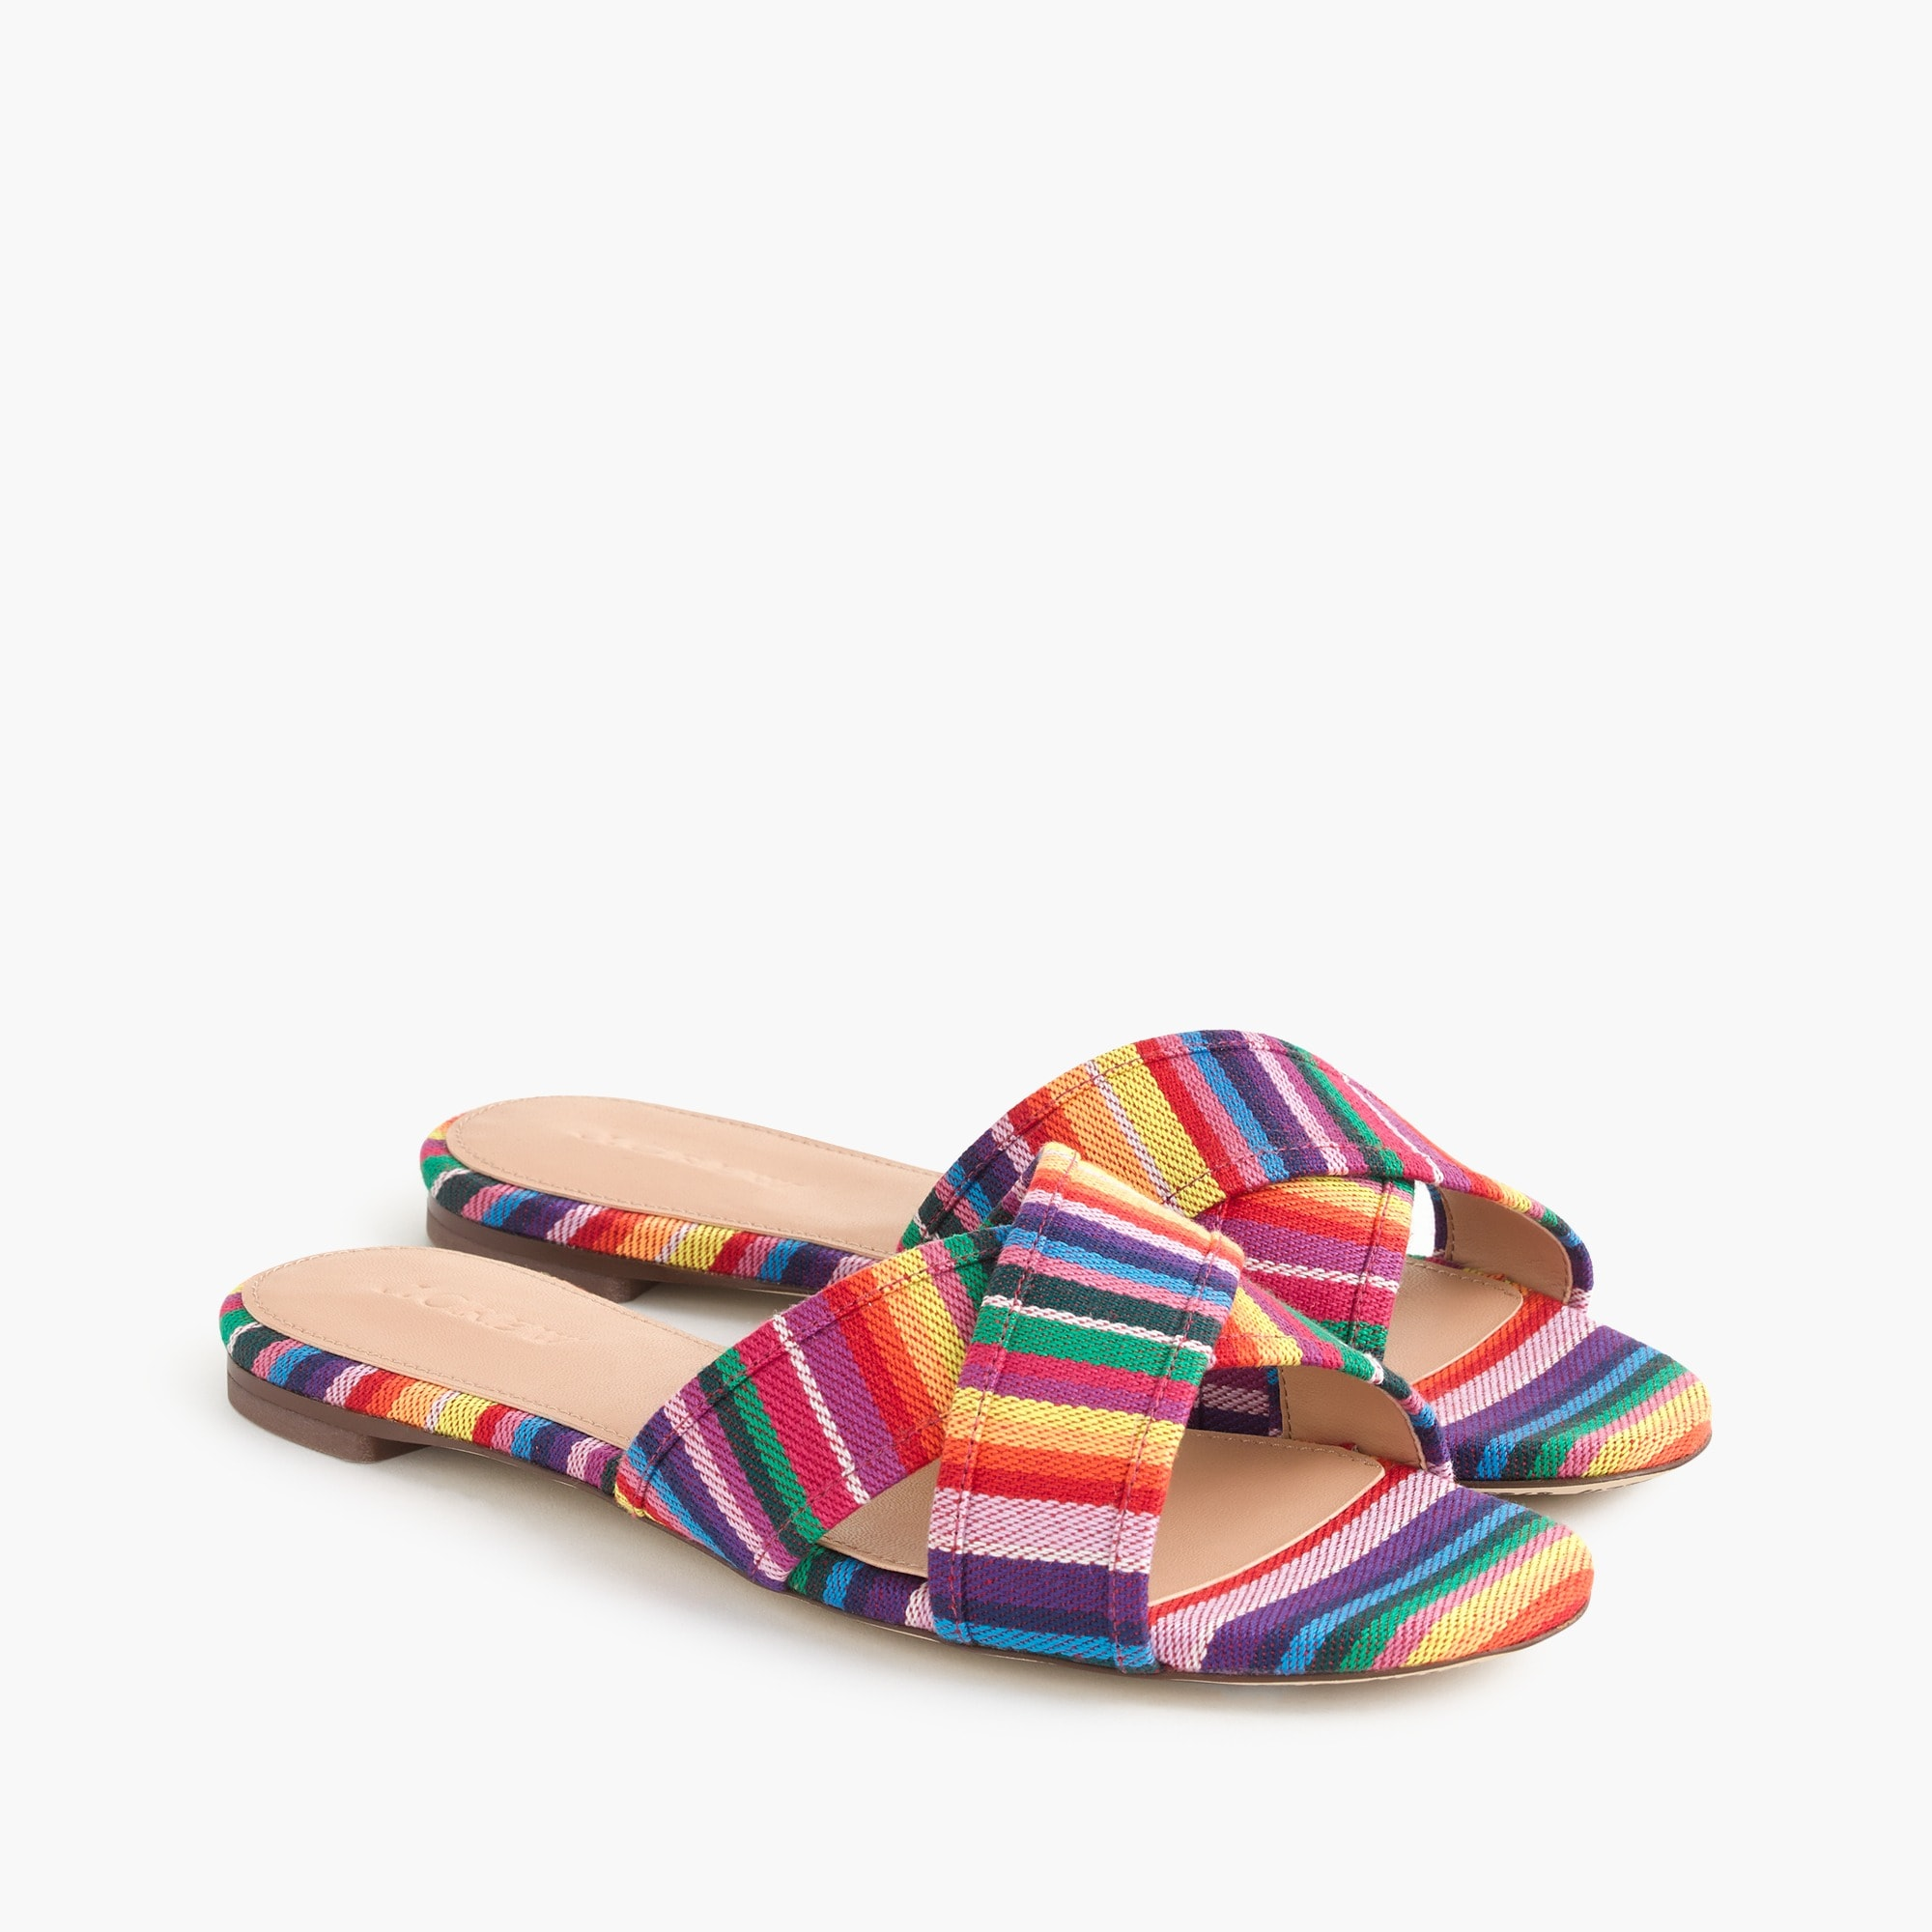 Multistripe Cora crisscross sandals